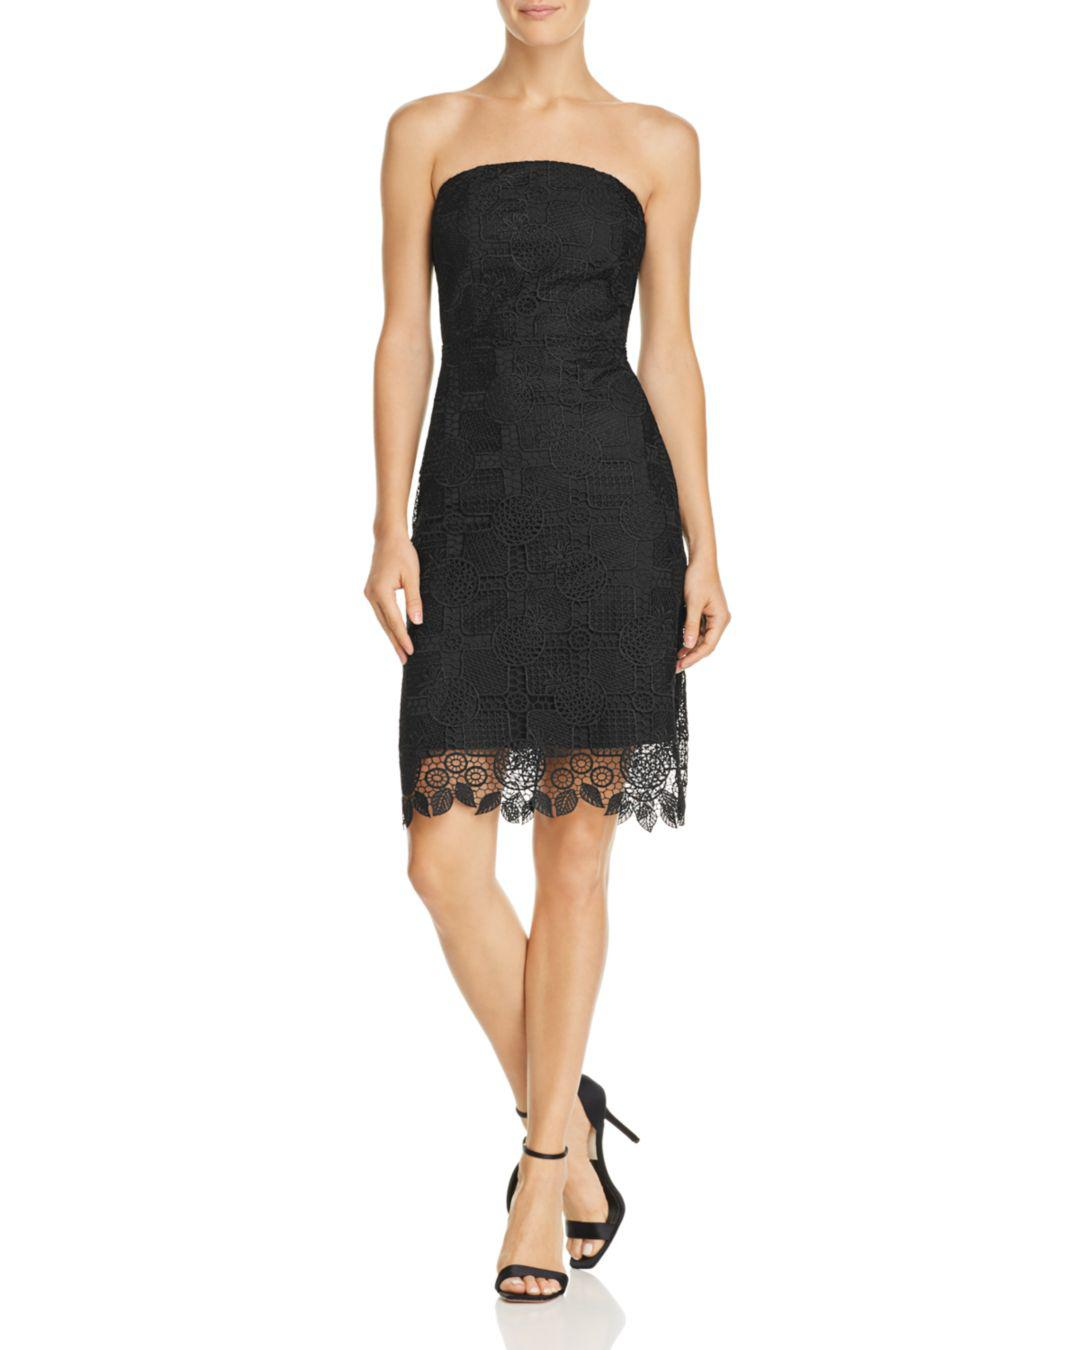 c875eb32 Gallery. Previously sold at: Bloomingdale's · Women's Lace Dresses